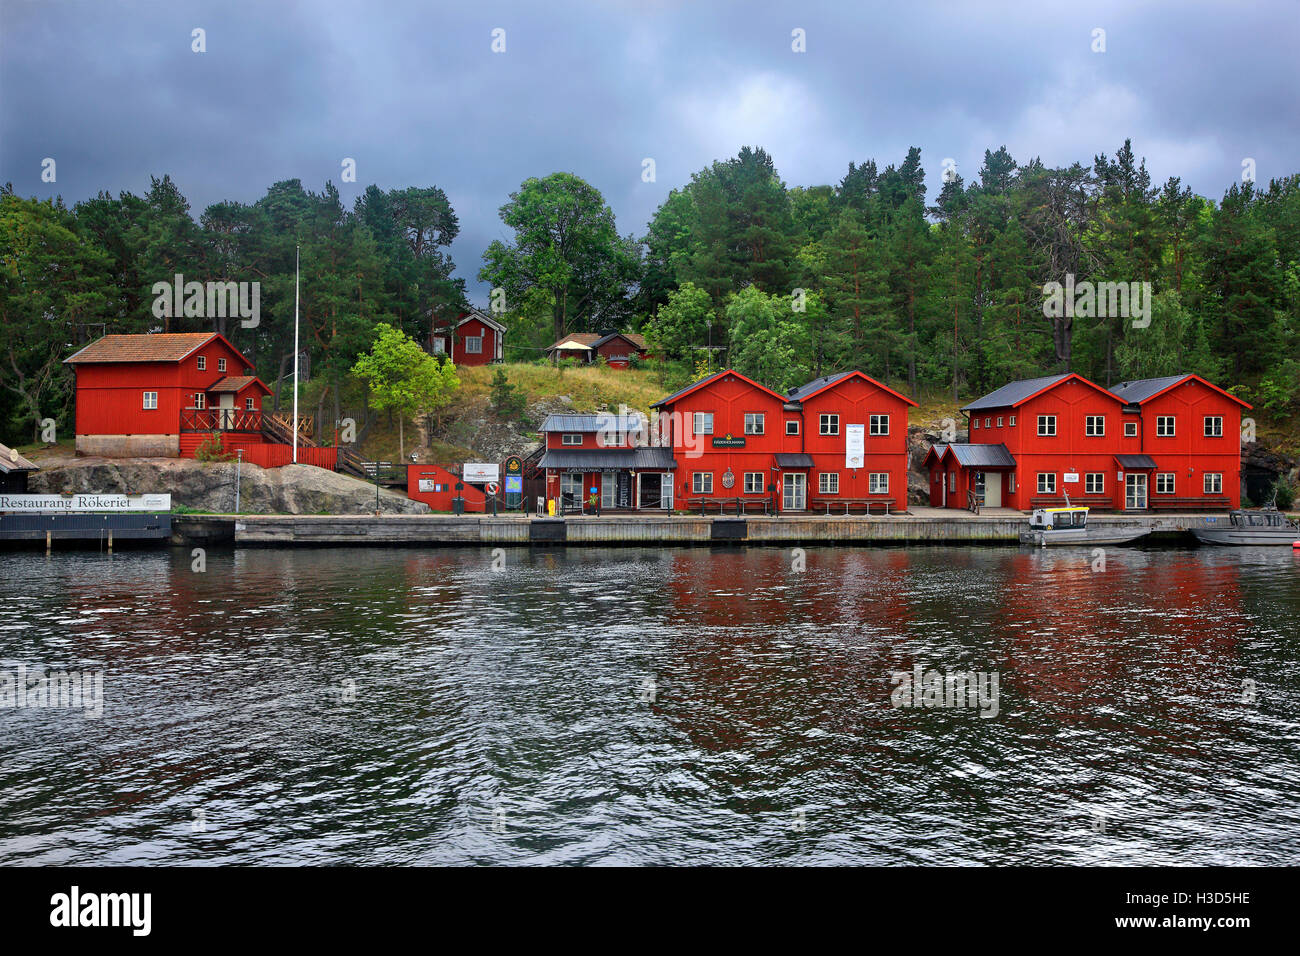 Fjäderholmarna island in the archipelago of Stockholm, Sweden. View from the ship during a daily cruise from - Stock Image